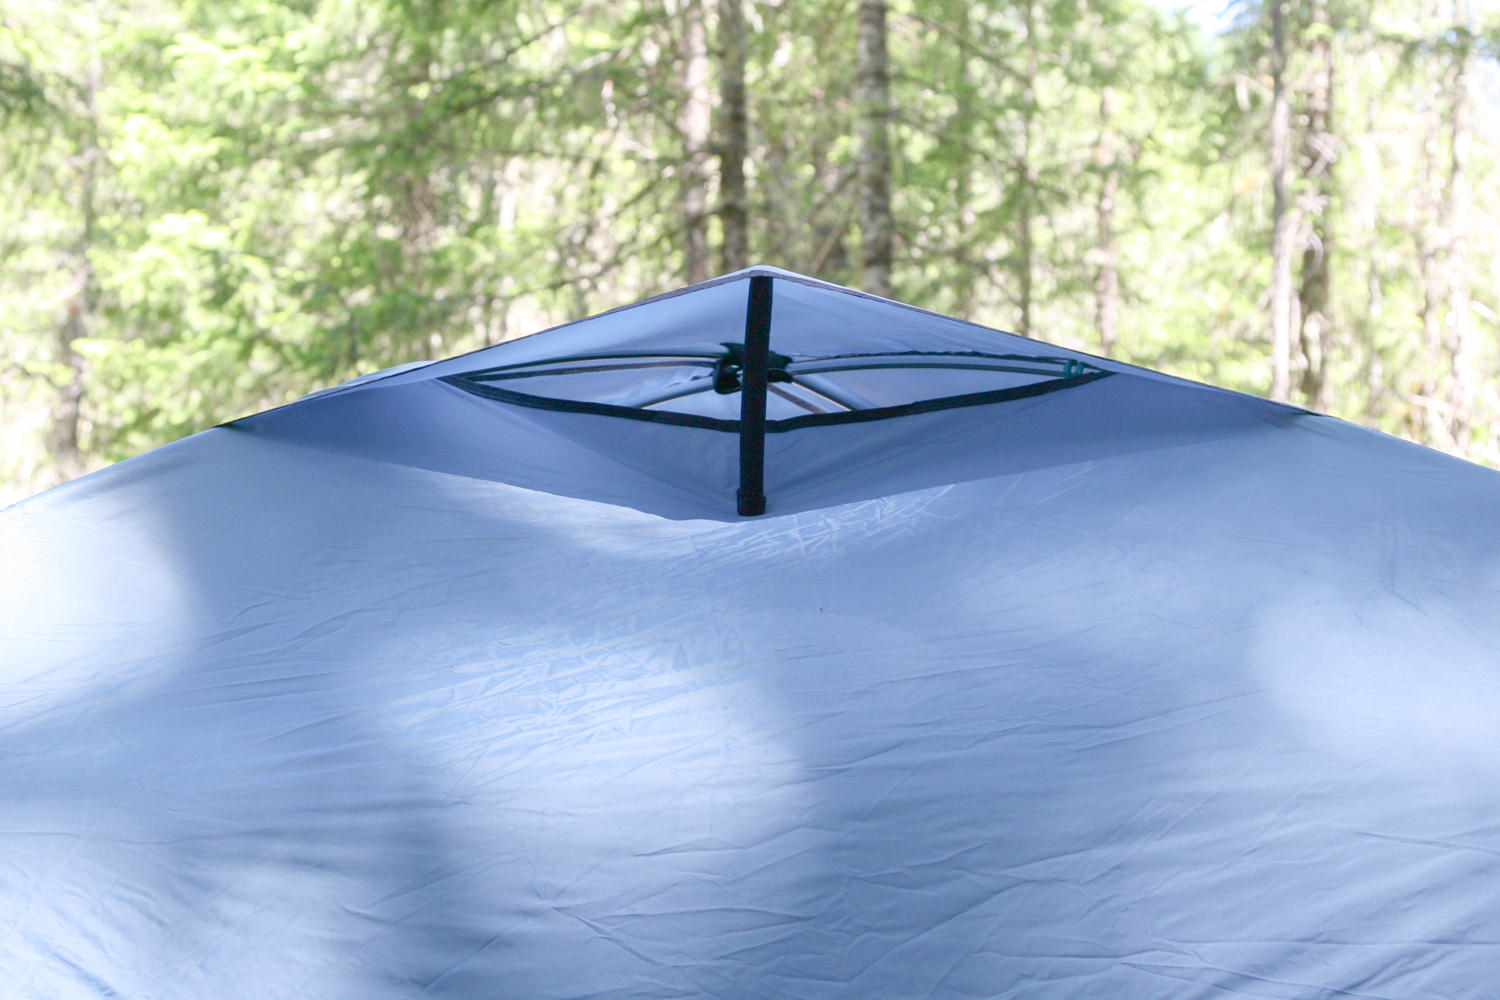 kickstand vents that you can access from the interior of the tent offer good ventilation.